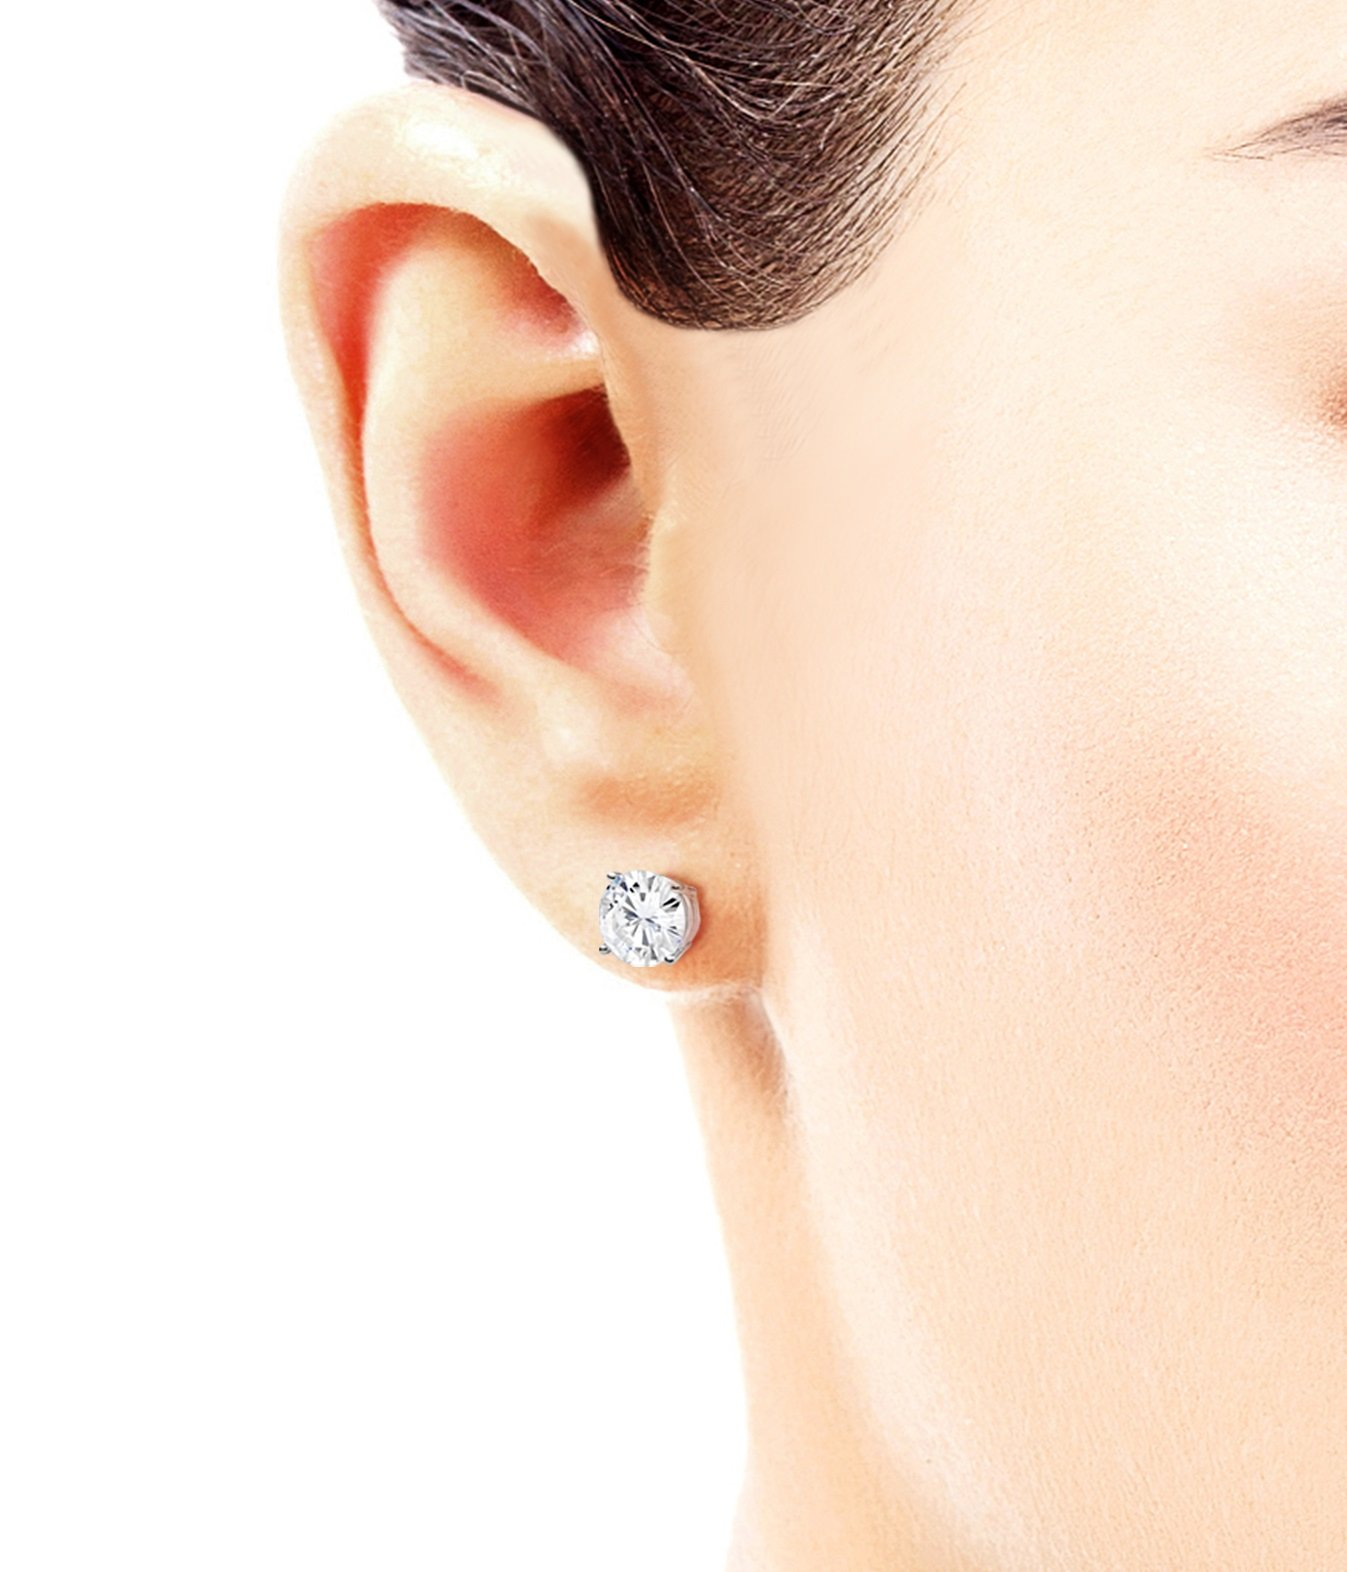 Forever One 6.5mm Round Moissanite Stud Earrings, 2.00cttw DEW By Charles & Colvard by Charles & Colvard (Image #3)